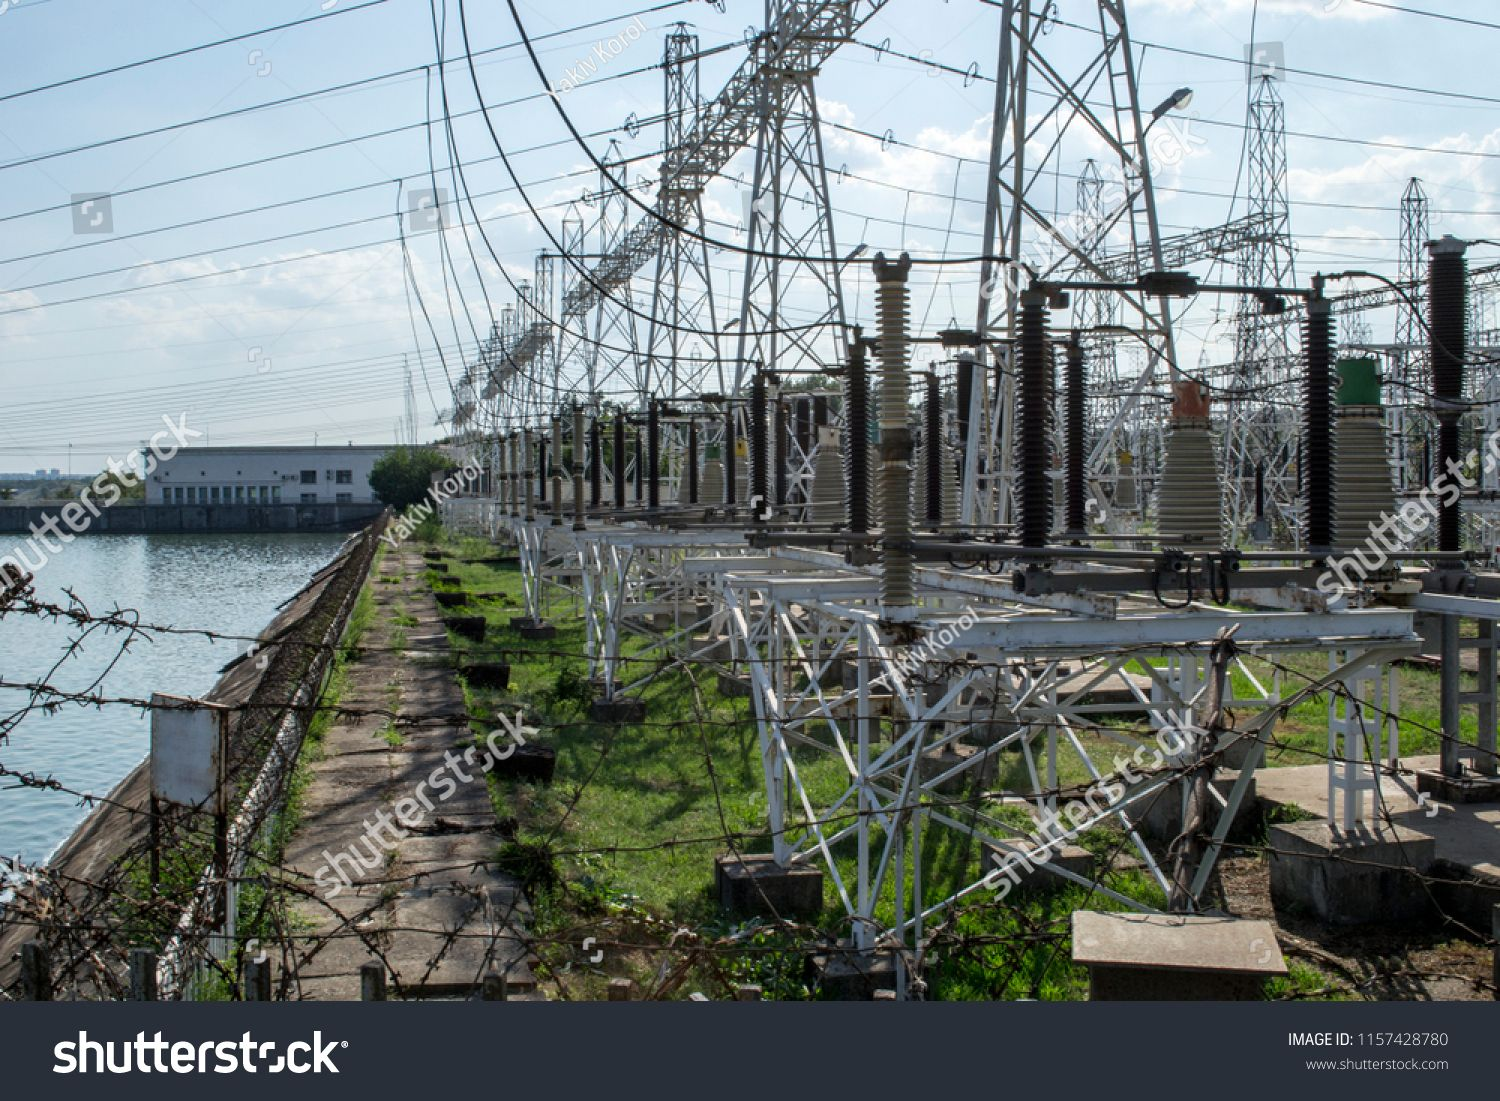 Ð•nvironmental pollution. Hydroelectric power station